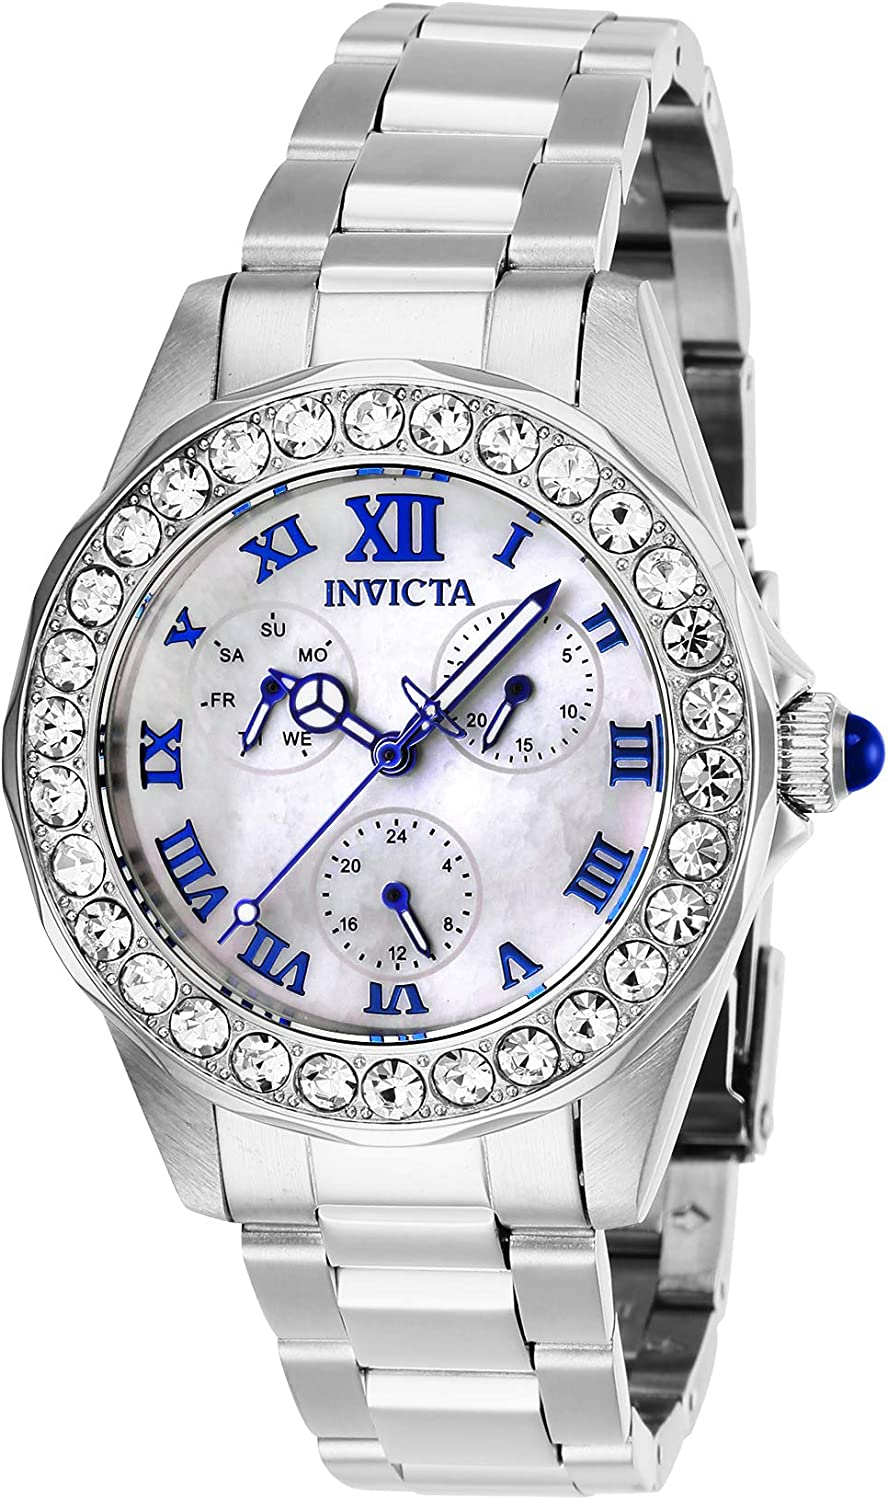 Invicta Women's Angel Quartz Watch with Stainless Steel Strap, Silver, 18 (Model: 28463)